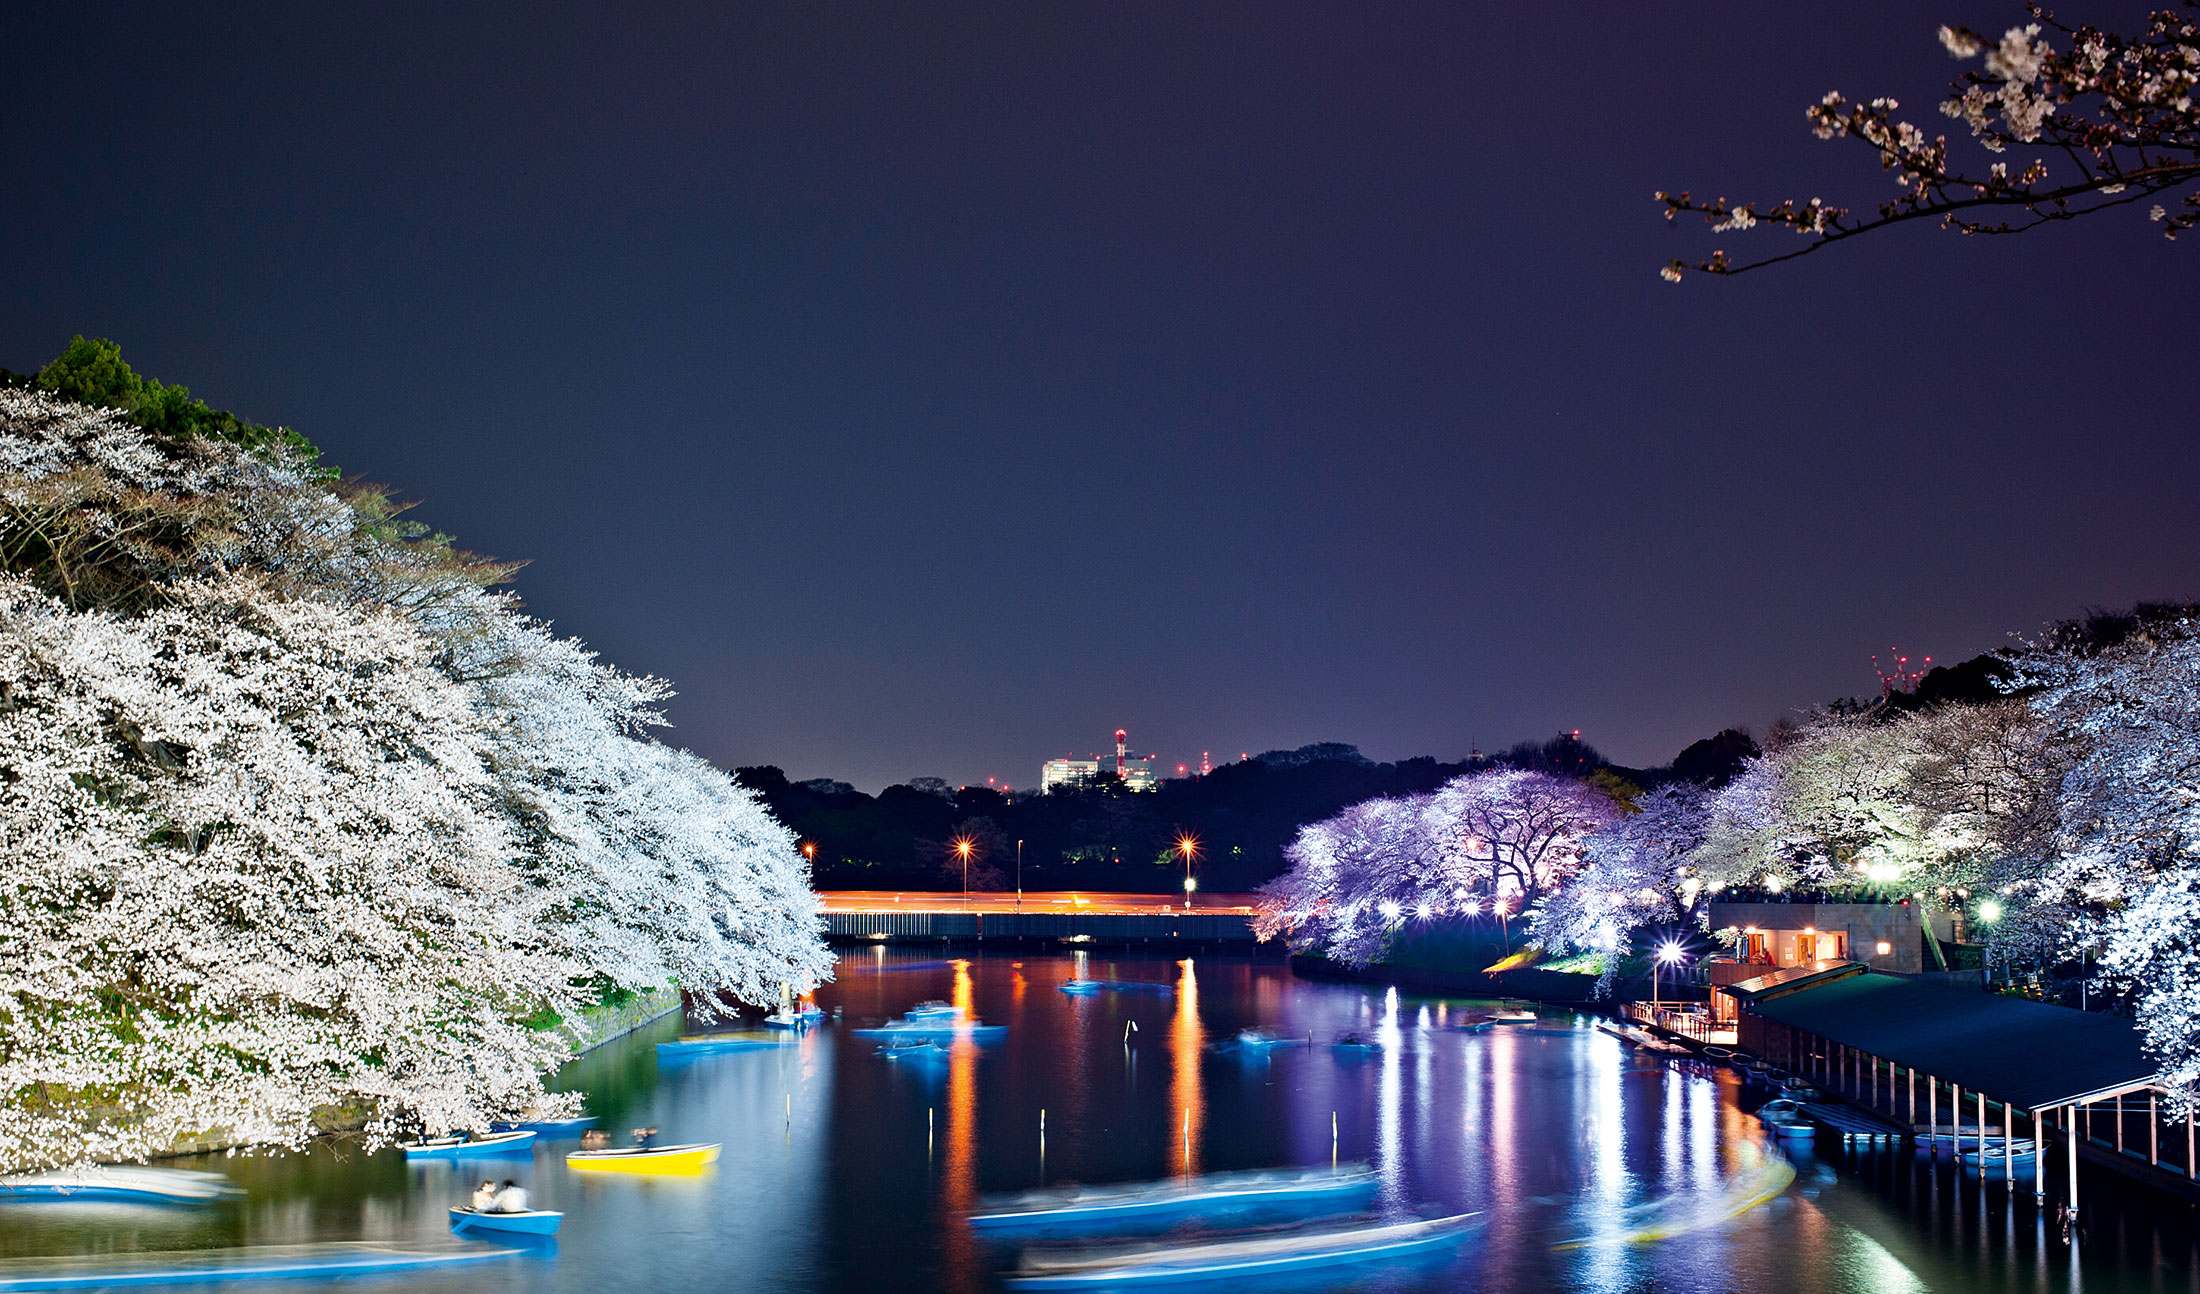 Japan's cherry blossom season is a time-honoured tradition that is celebrated across the length and breadth of the country. This integral part of Japanese culture brings a flood of new visitors each year, and with it, a sizable boost to the country's economy